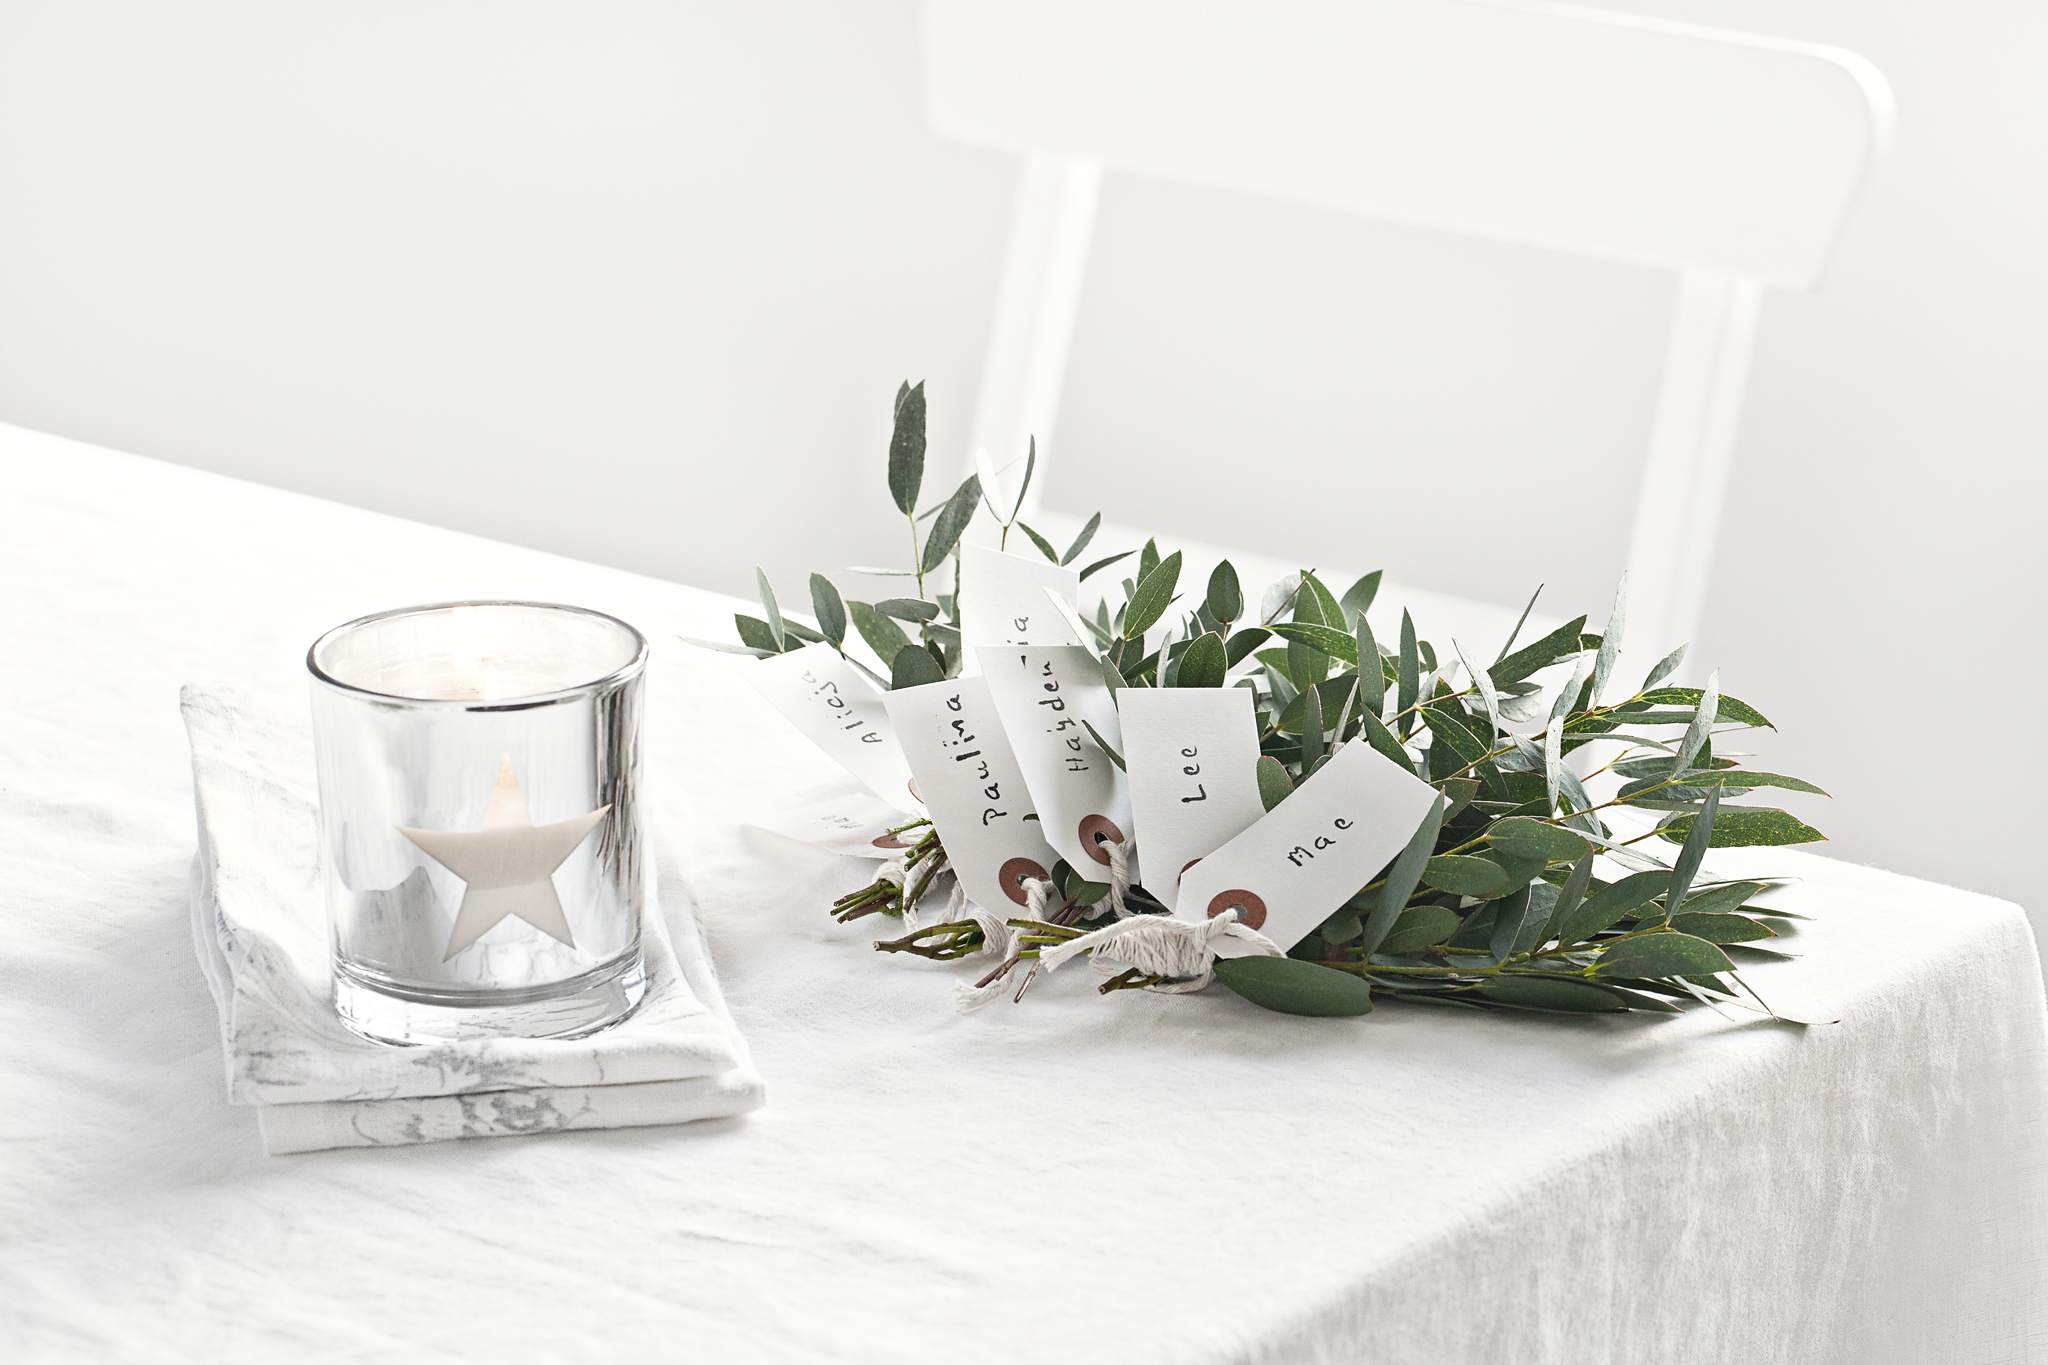 Star 'Holly Berry' scented candle from   Lovely Pair    | Table cloth and napkins from  The White Company